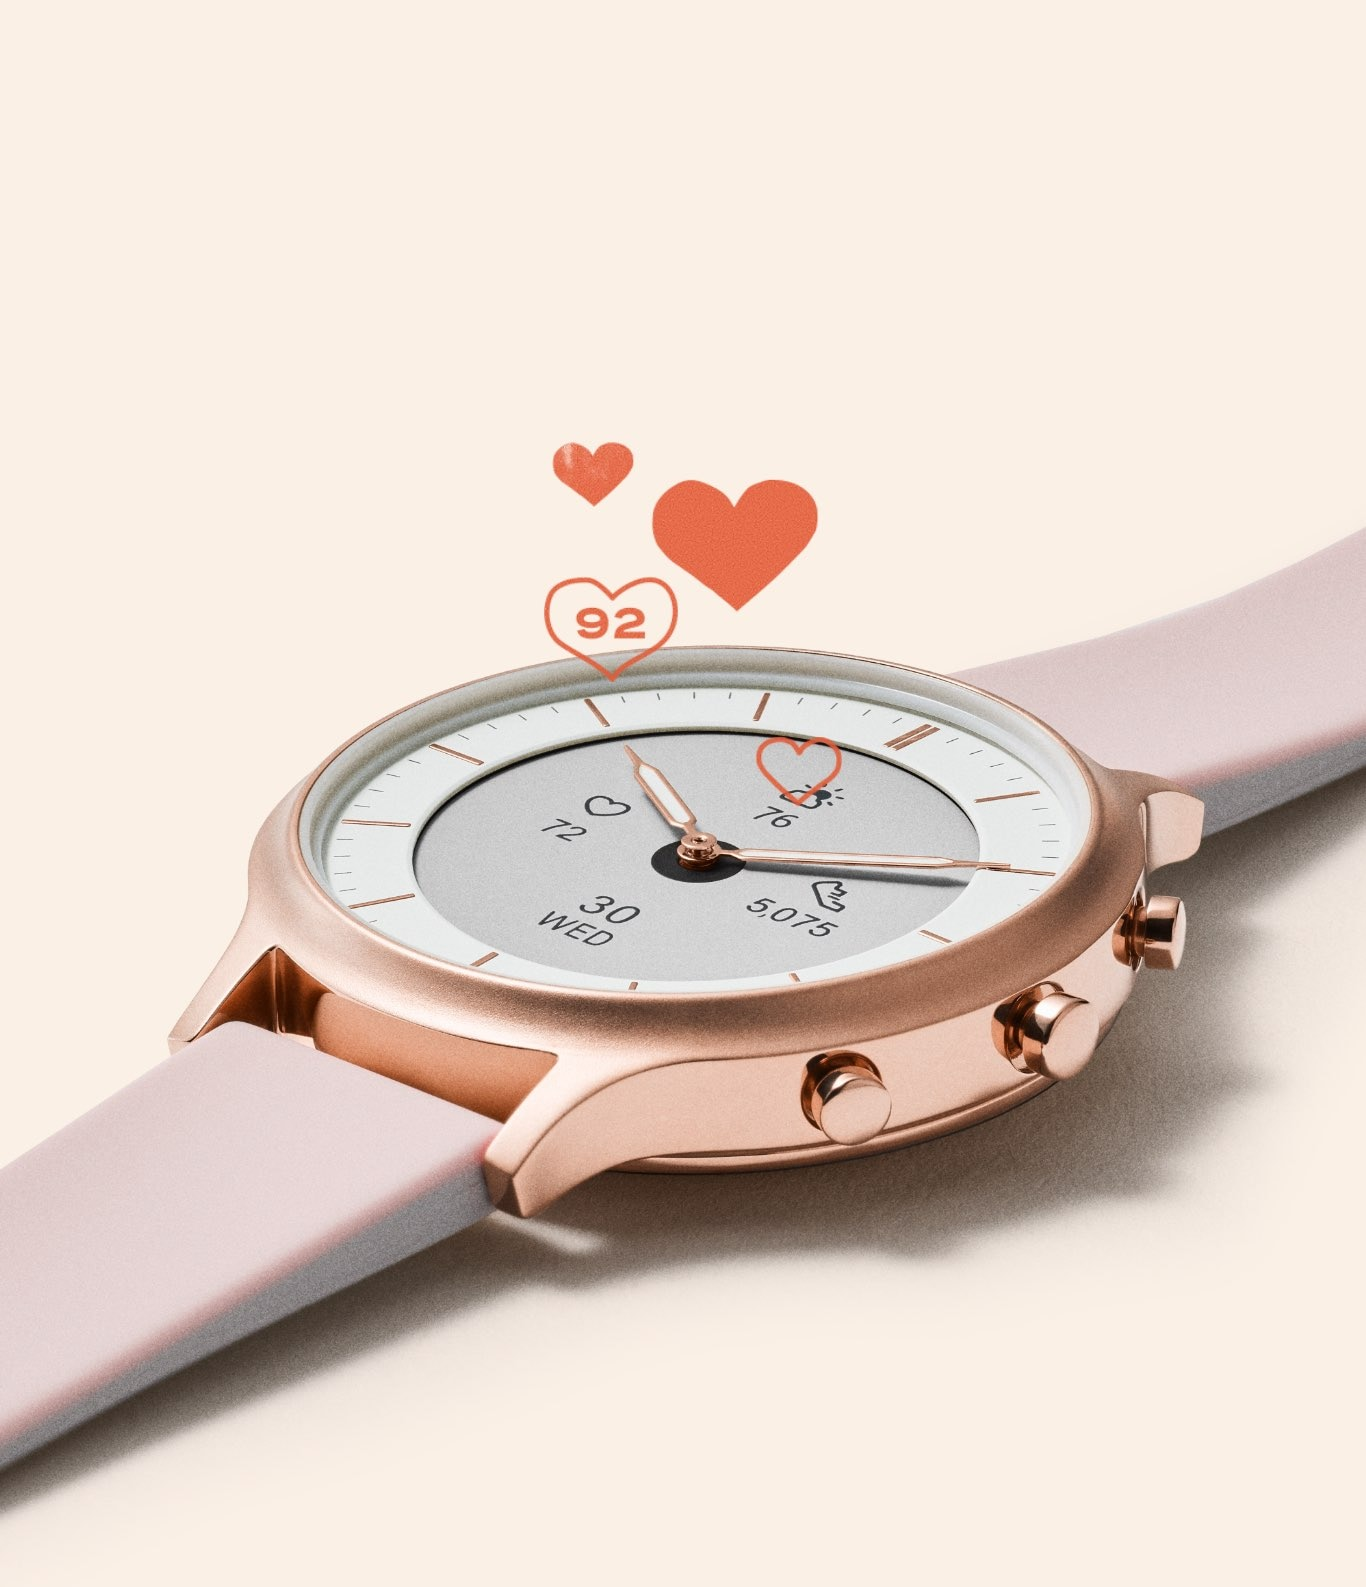 Hybrid Smartwatch HR with heart-rate tracking iconography.